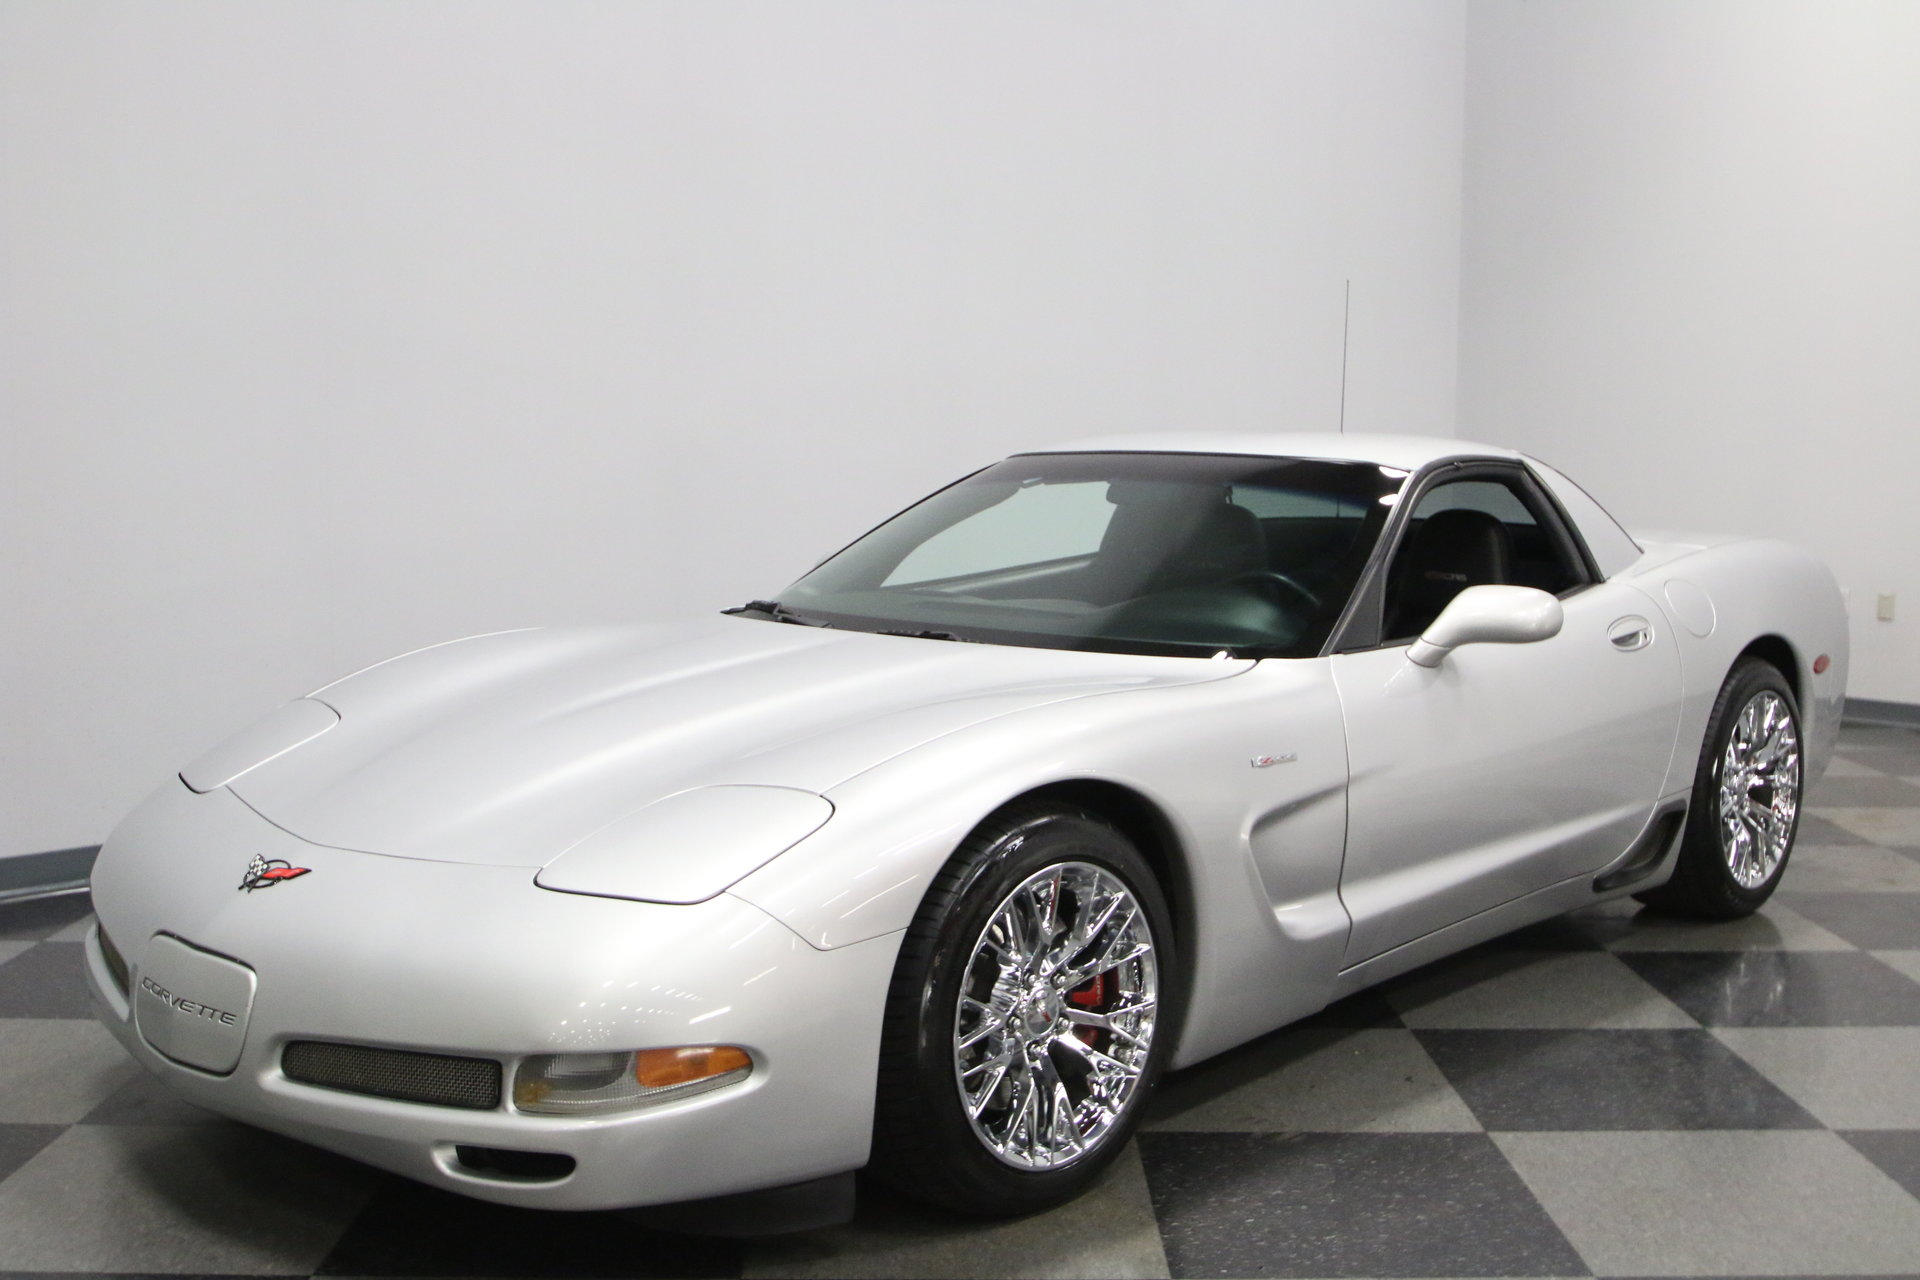 2001 Chevrolet Corvette Streetside Classics The Nations Trusted Fuel Filter View 360